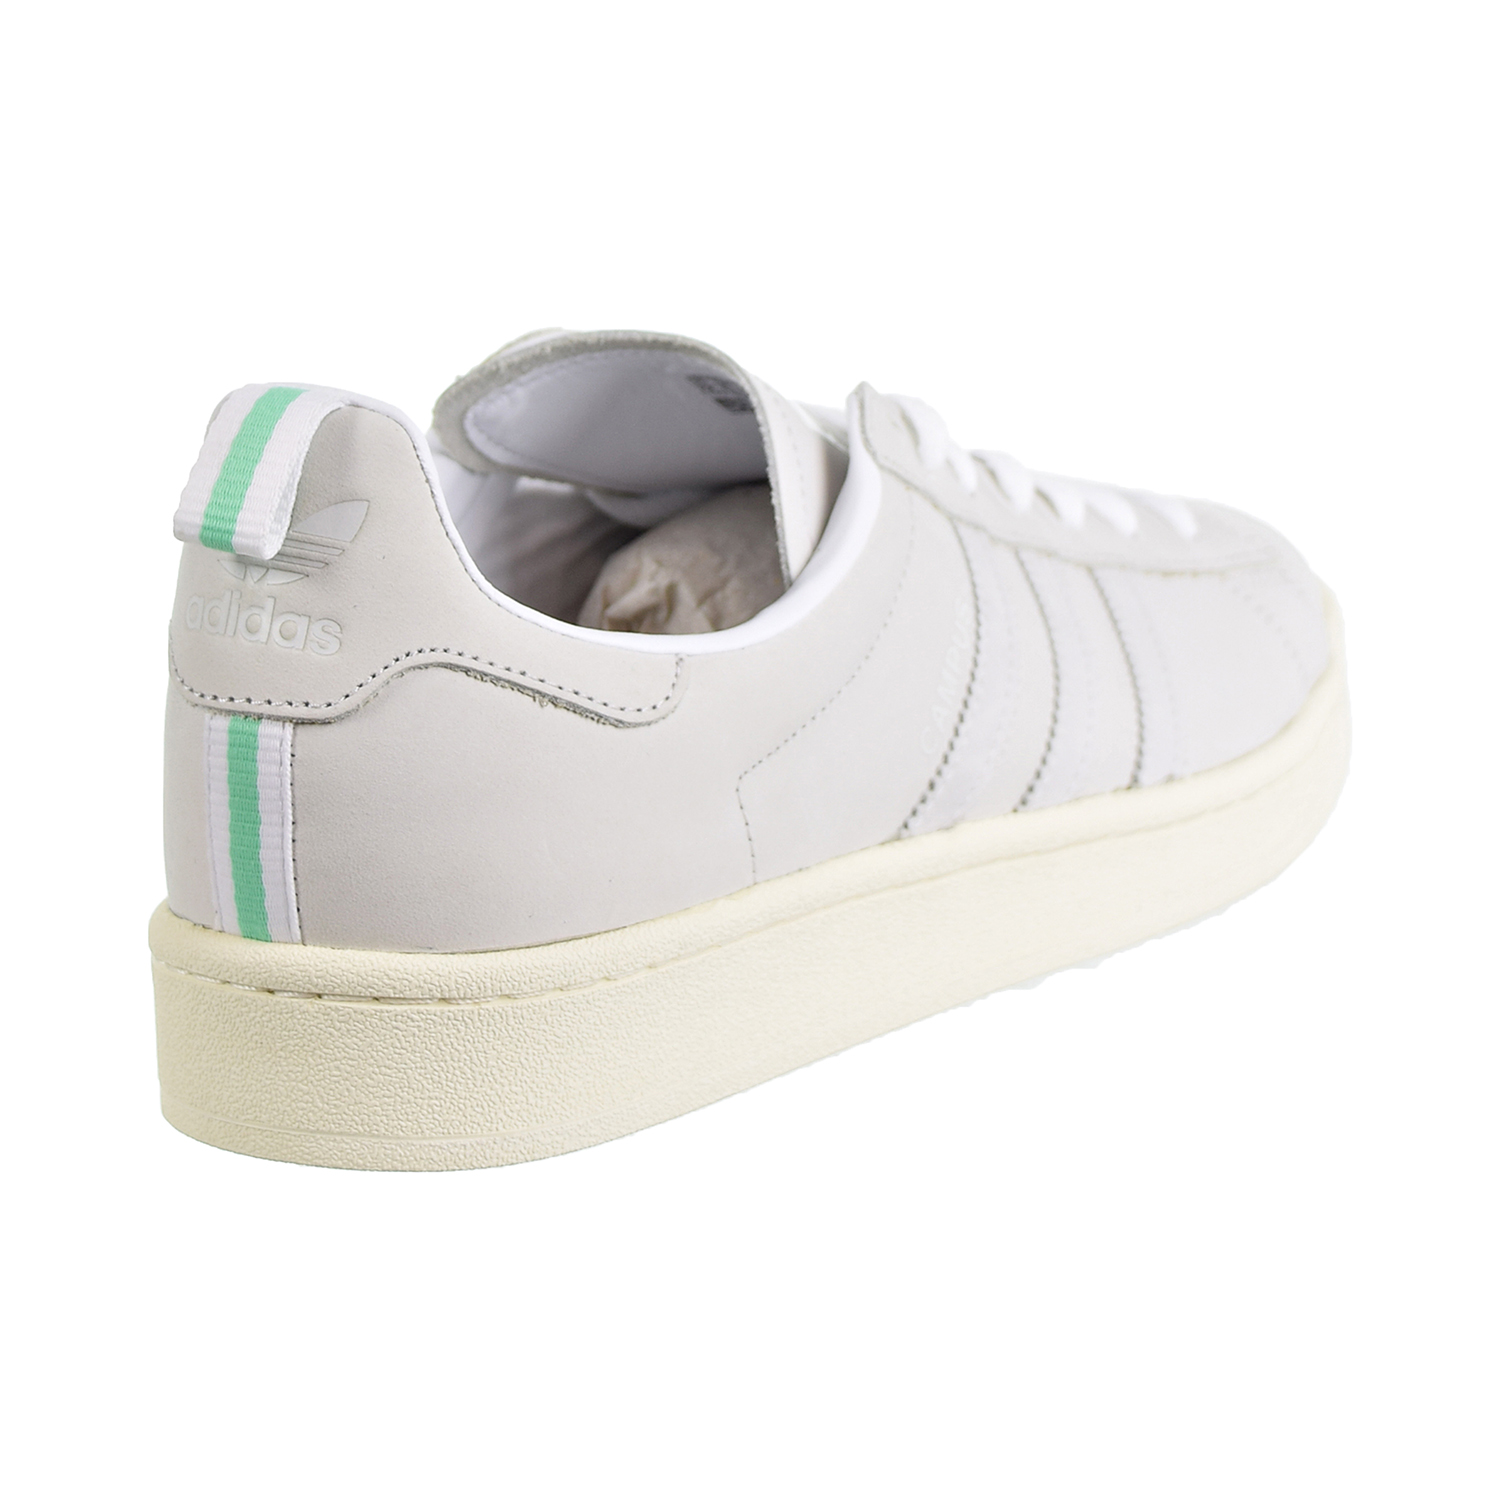 huge selection of a50c5 cae34 Adidas Originals Campus Mens Shoes Footwear WhiteVintage White bz0065